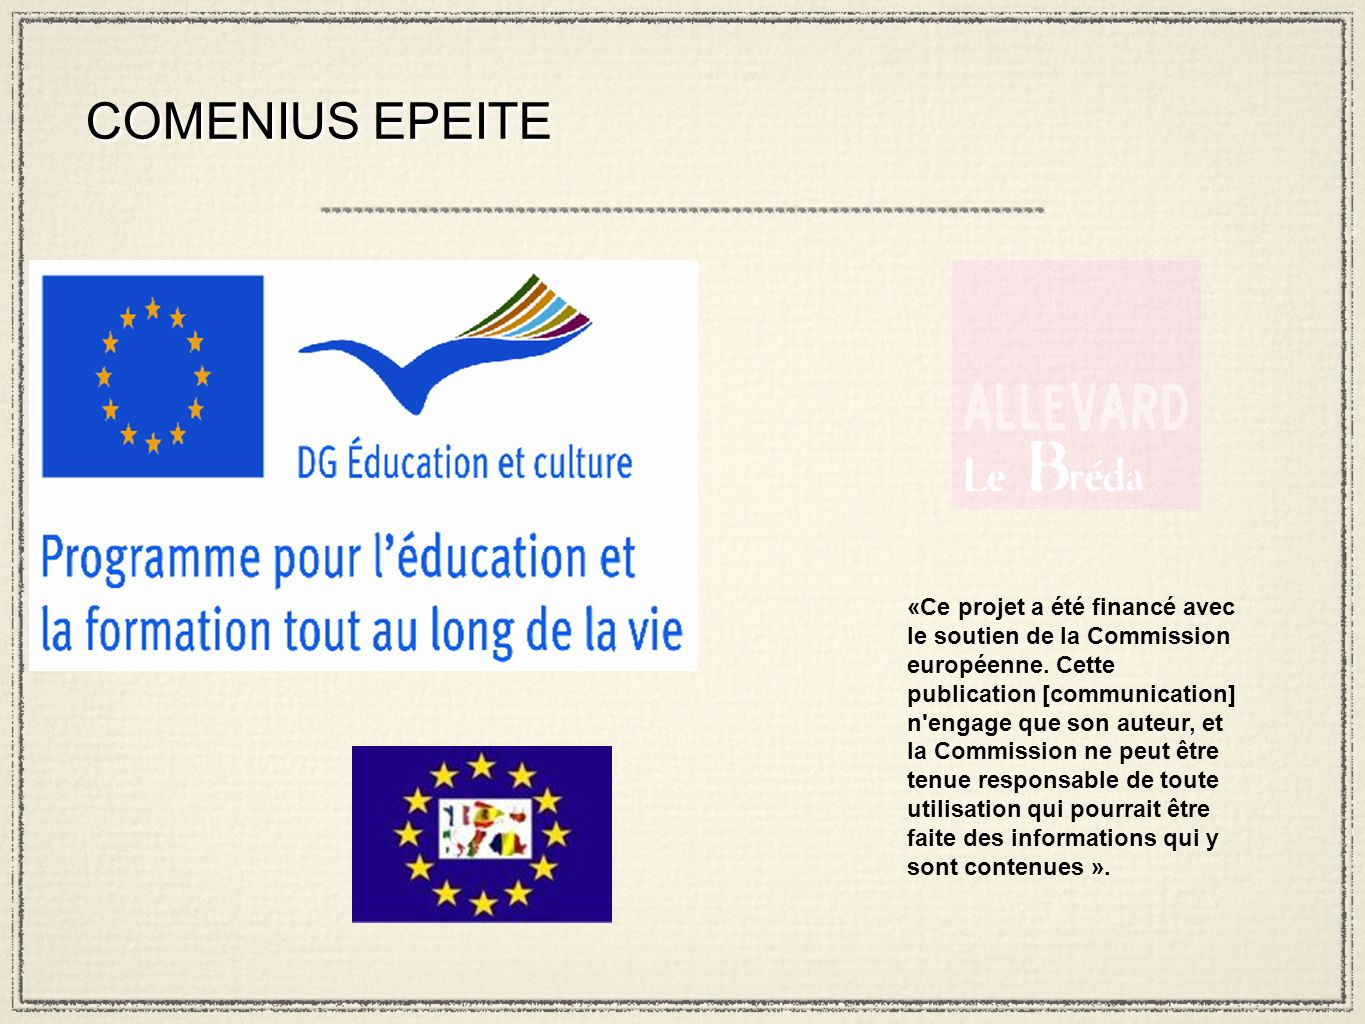 COMENIUS EPEITE